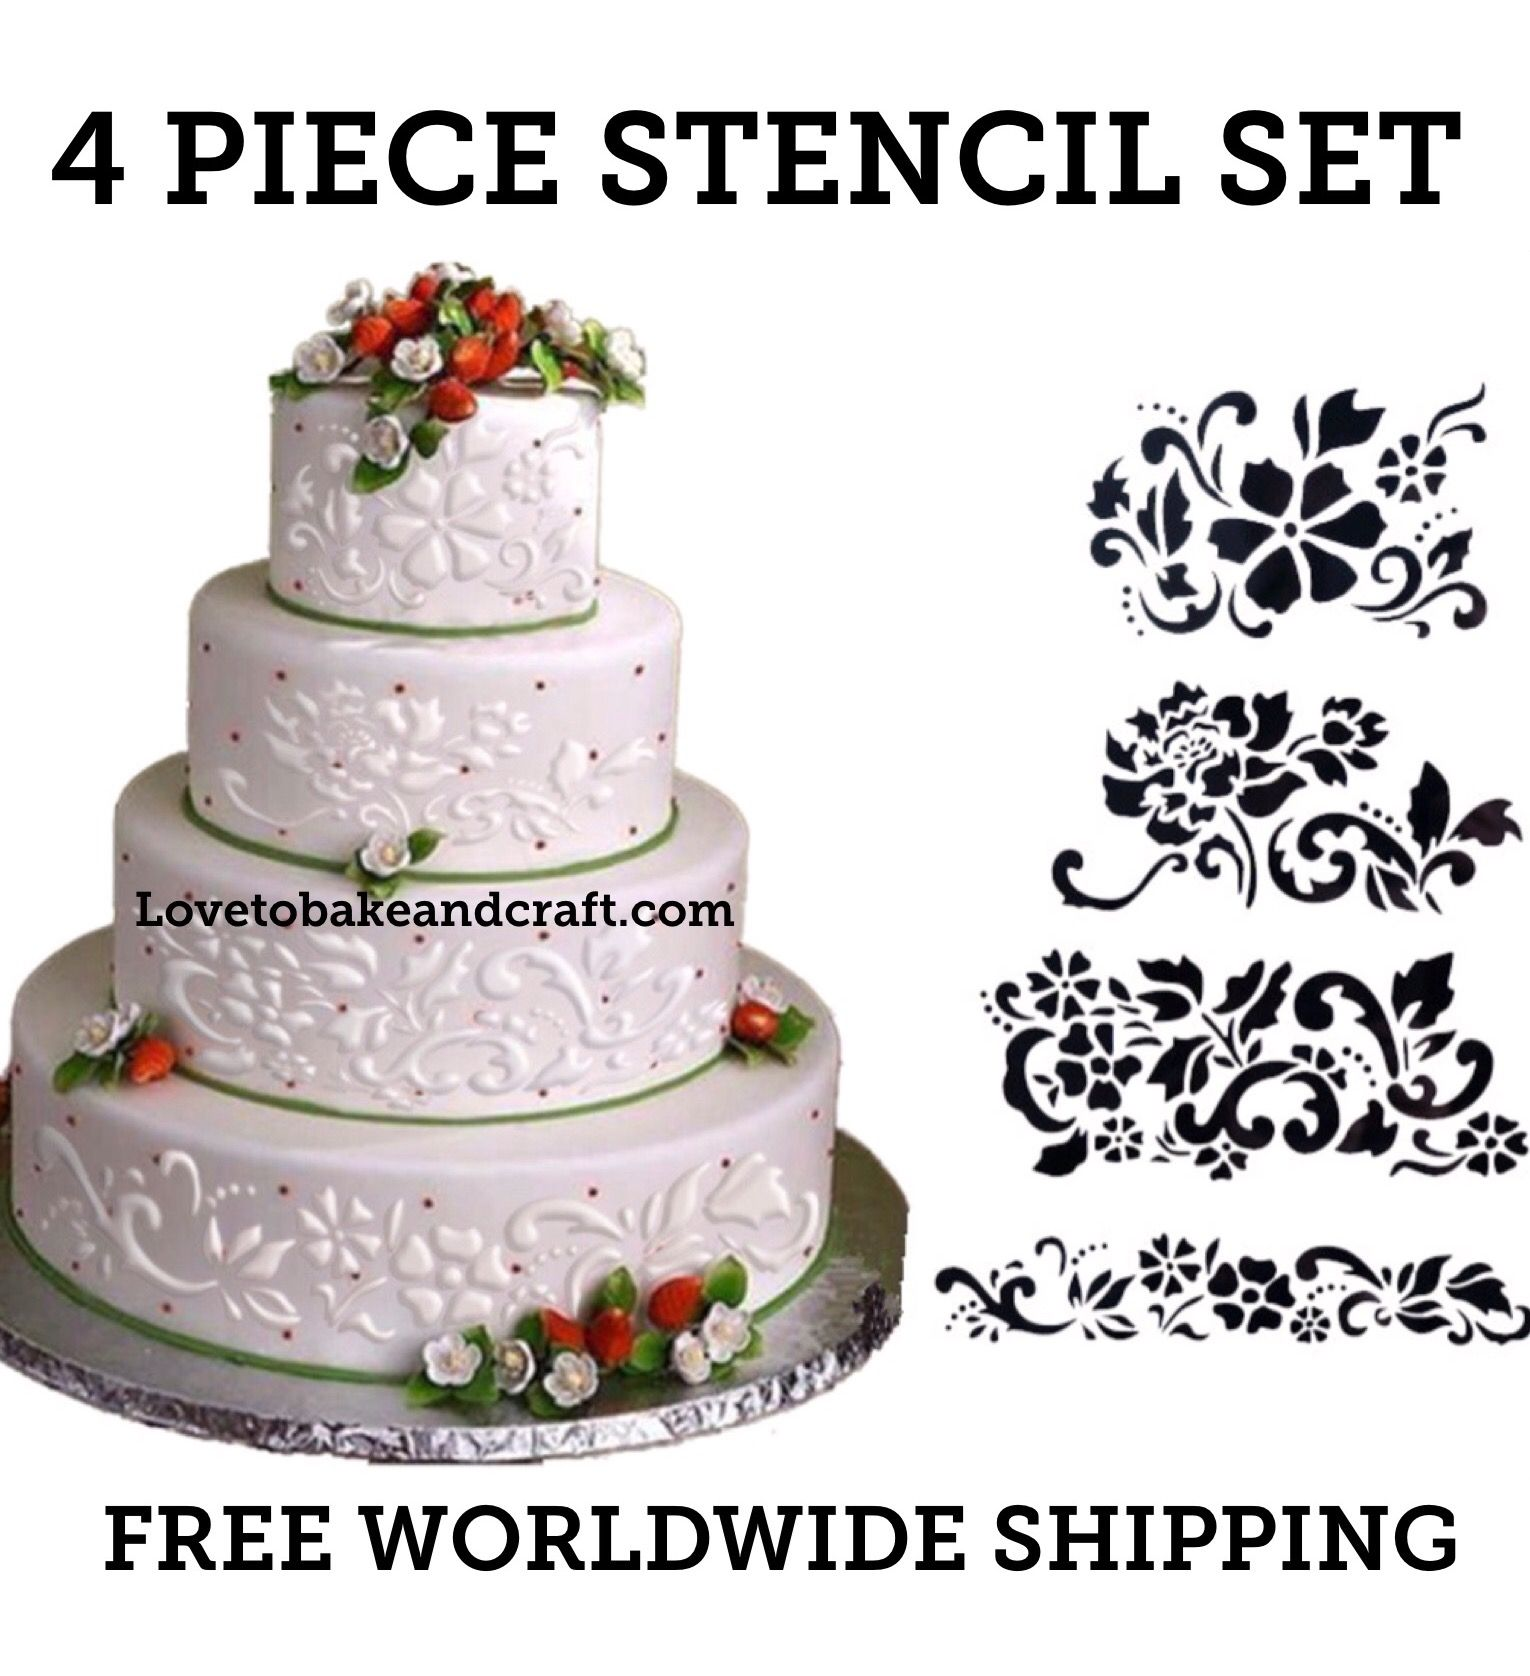 floral cake stencil 4 piece set flower cake stencil wedding cake stencil cake decorating. Black Bedroom Furniture Sets. Home Design Ideas